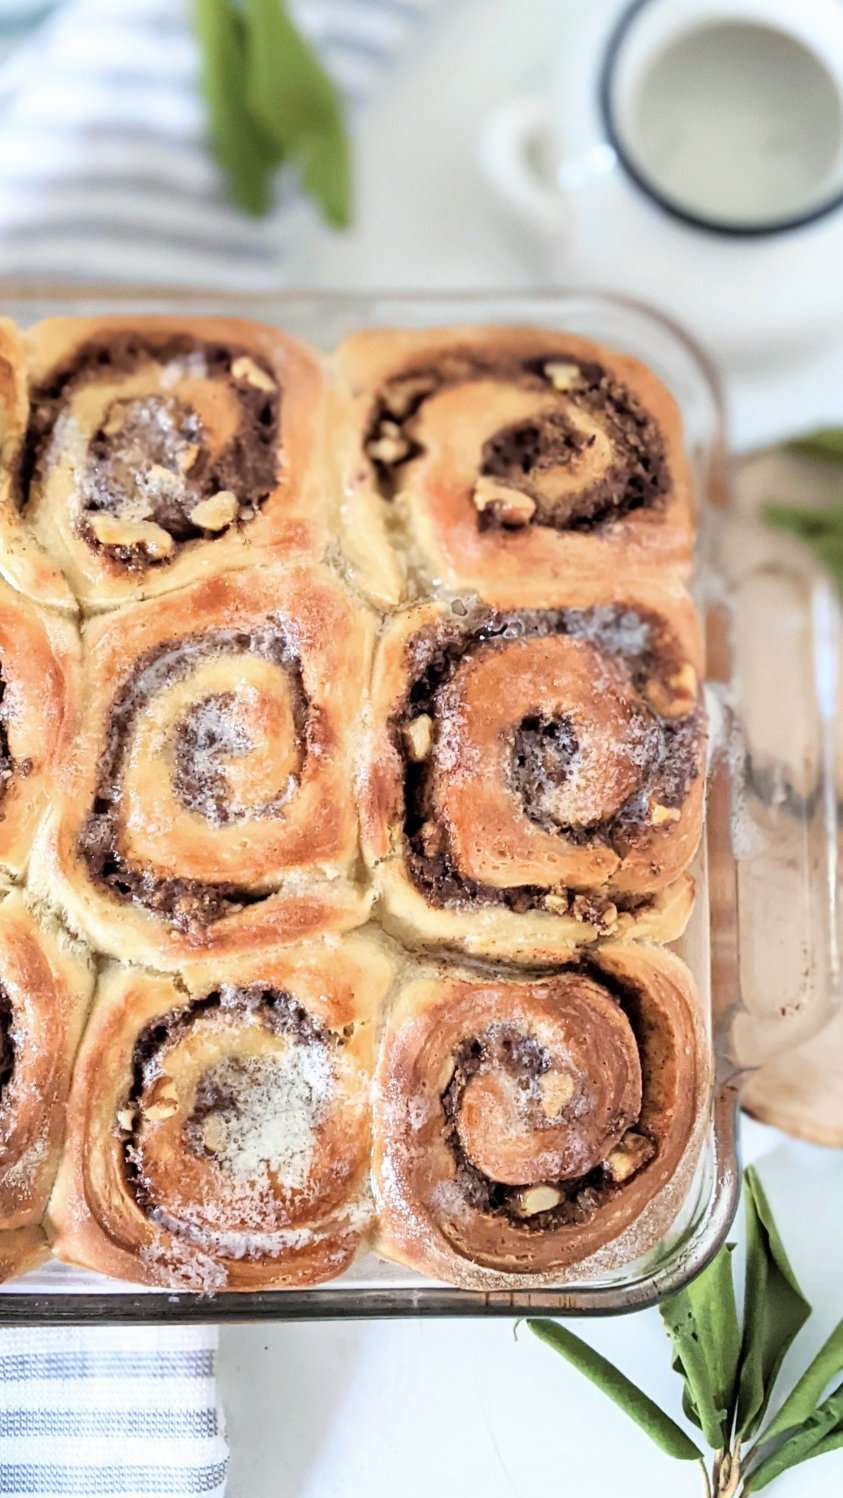 fluffy brioche cinnamon buns with sourdough starter discard recipes best brunch recipes for guests christmas morning breakfasts impress guests